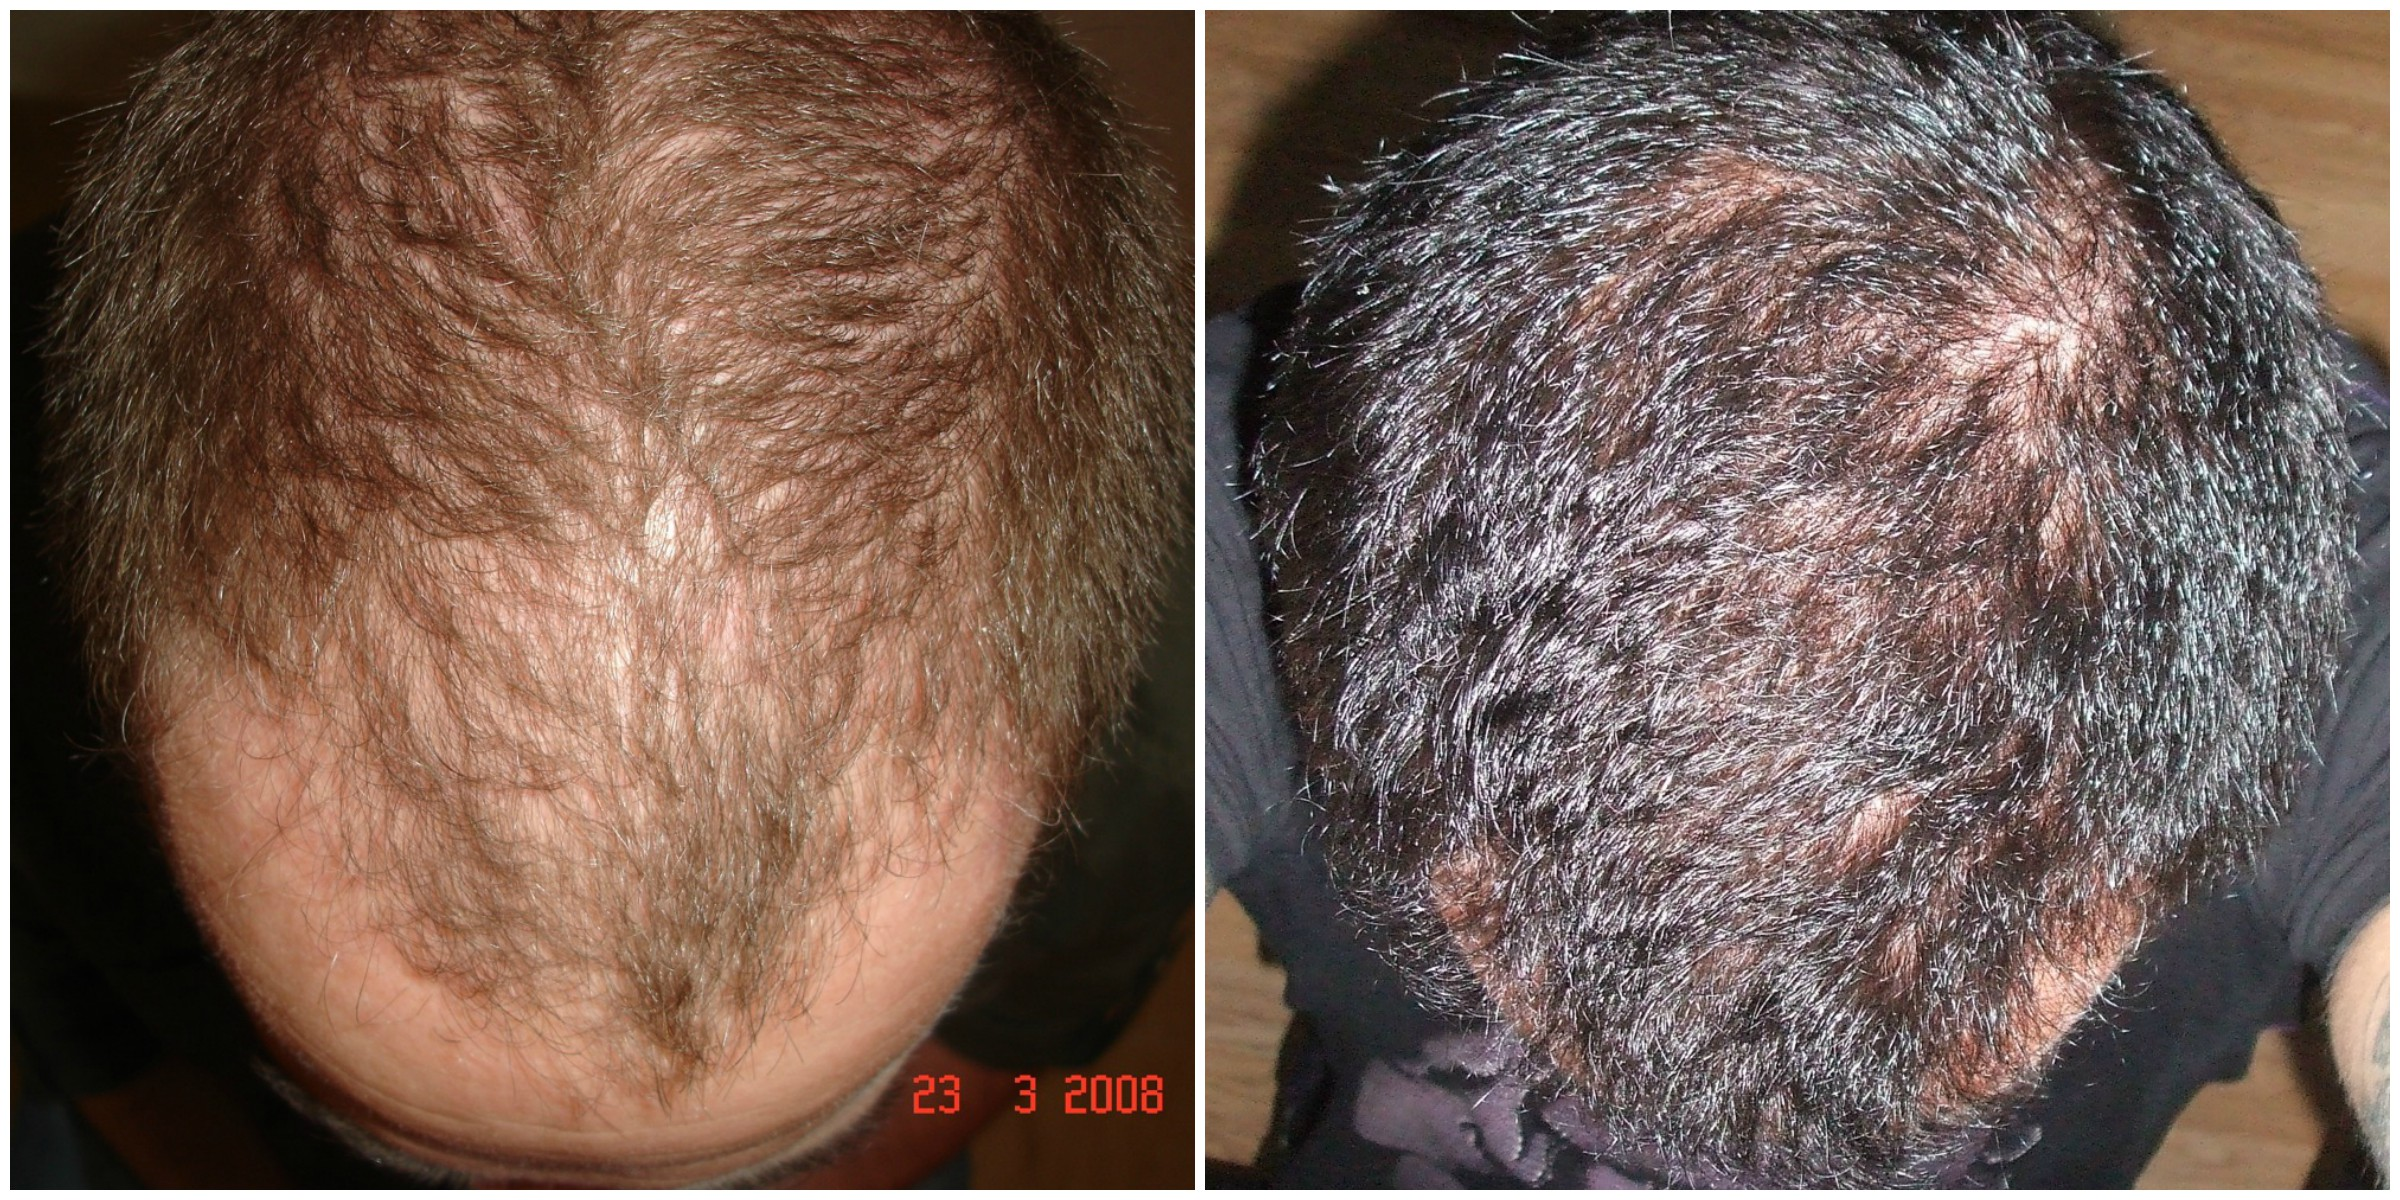 Results after FUE